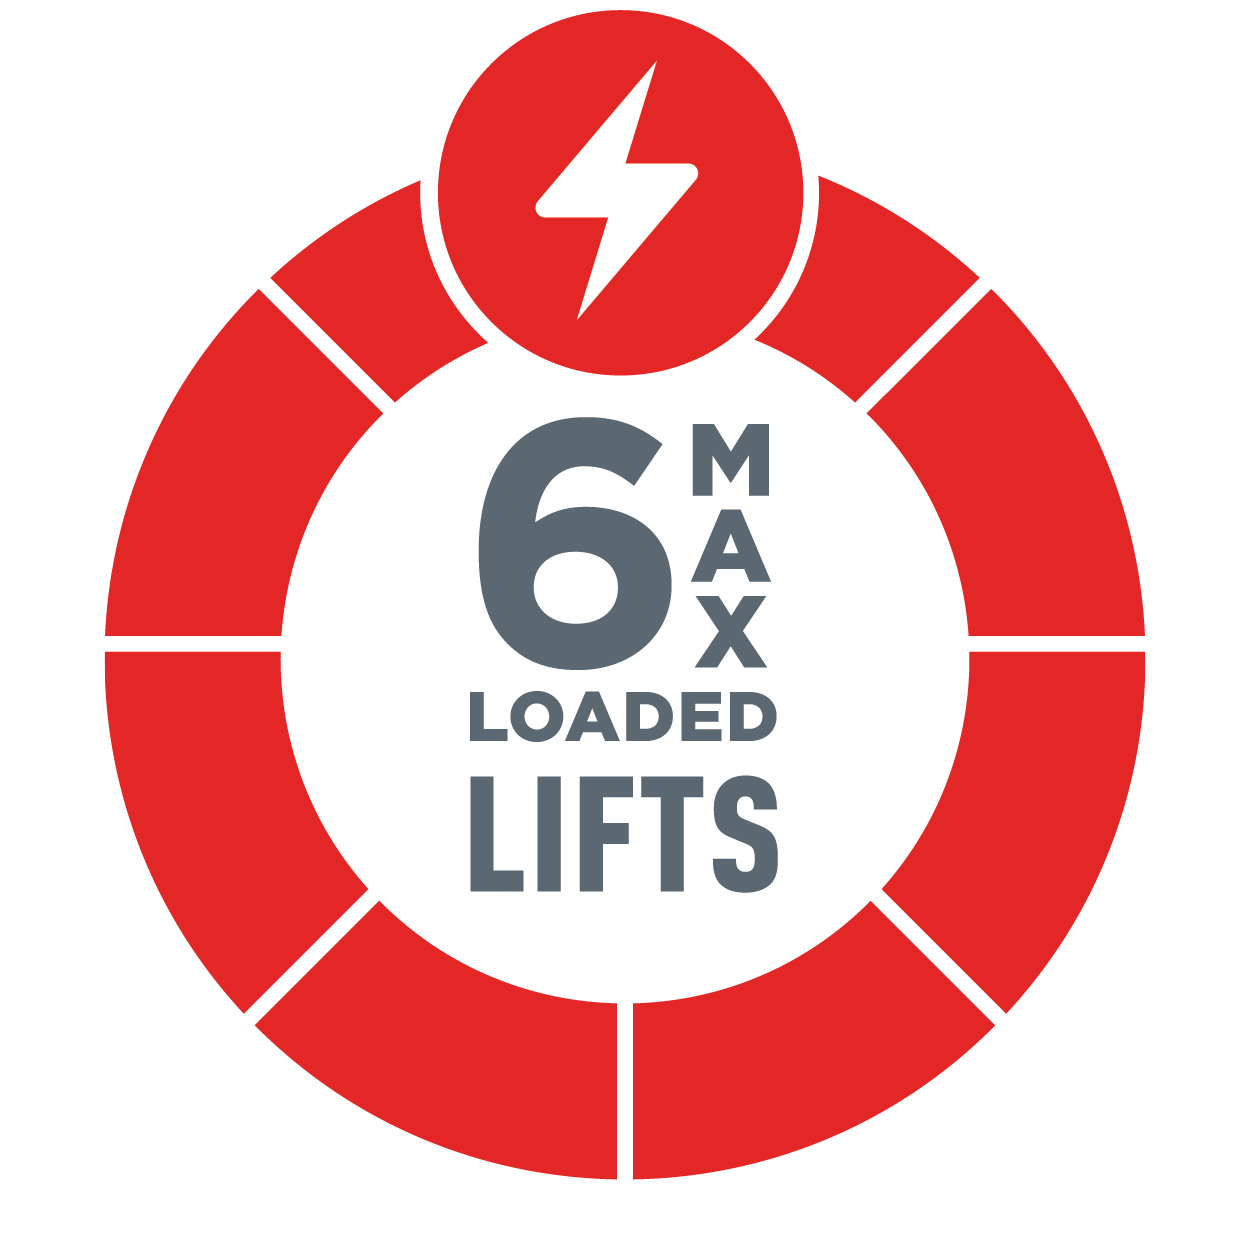 Hoist System ideal for unlimited loaded lifts